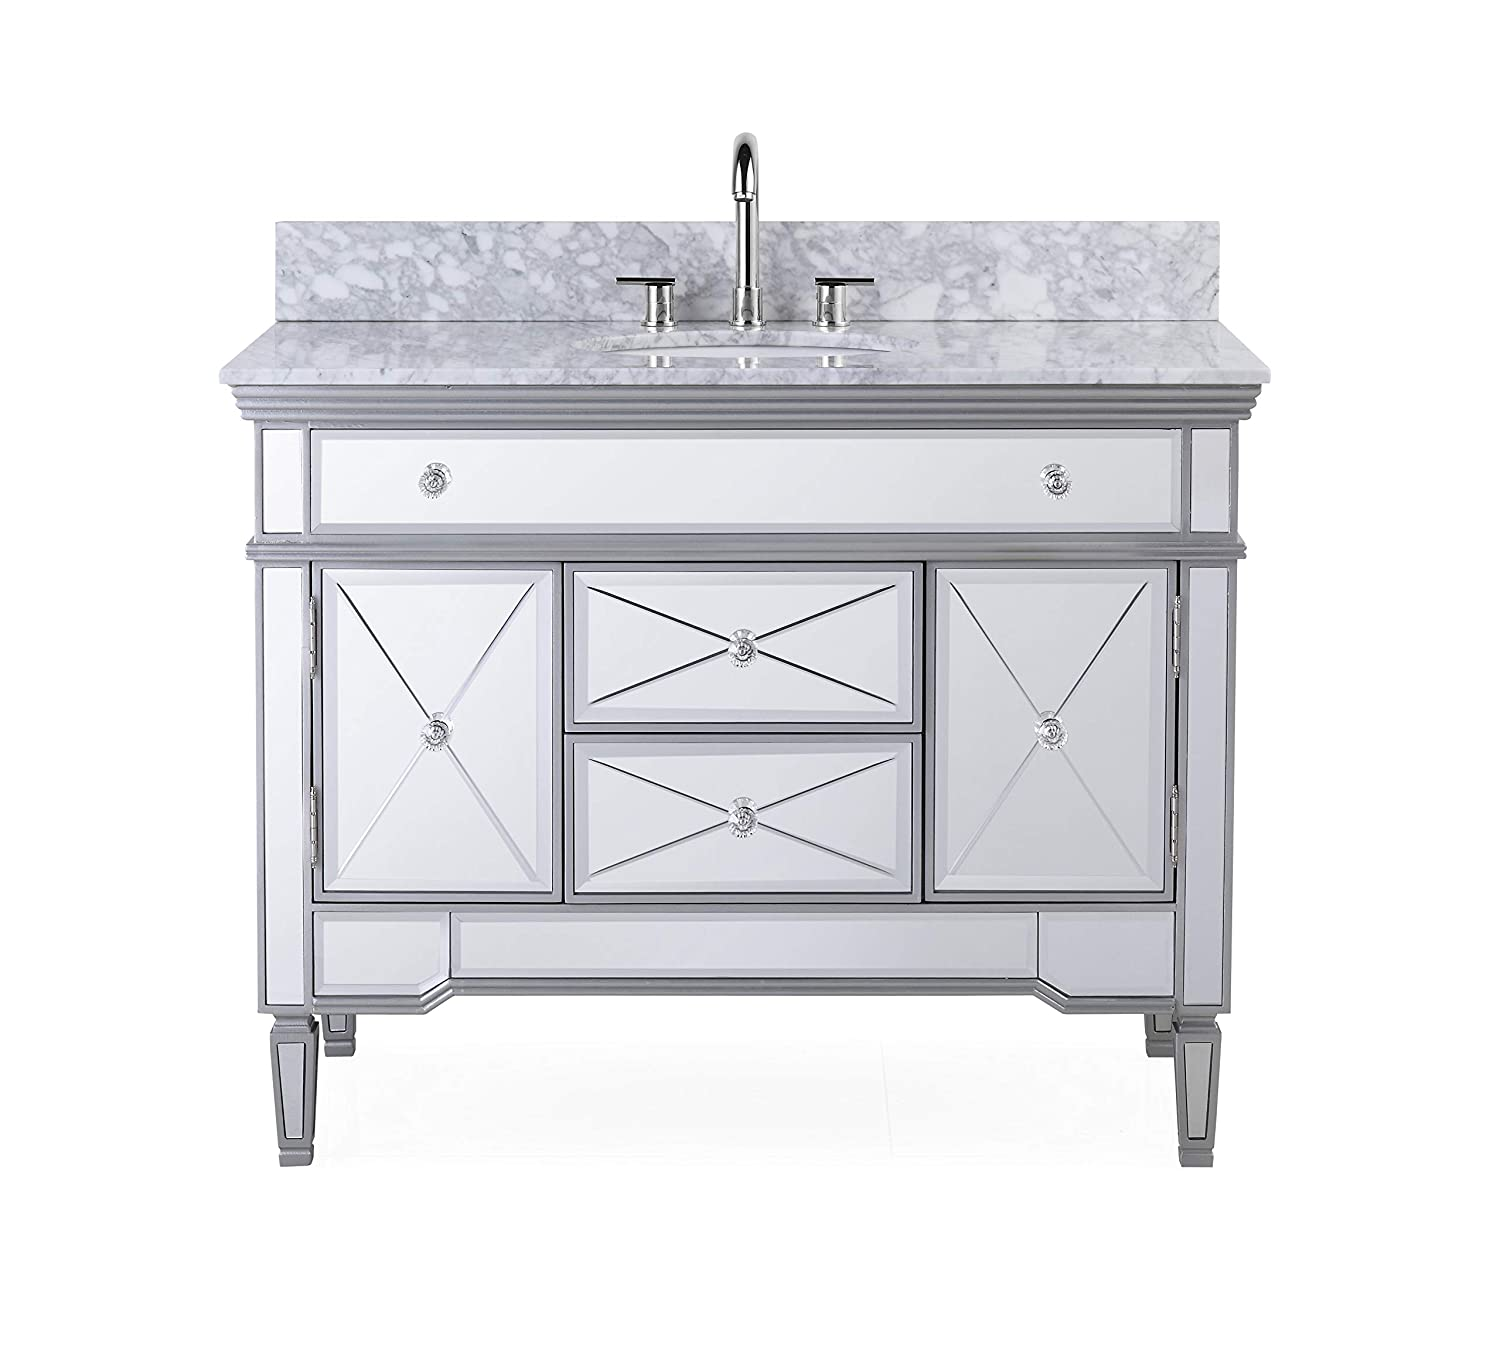 44 All-mirrored reflection Austin Bathroom sink vanity Model N-755W